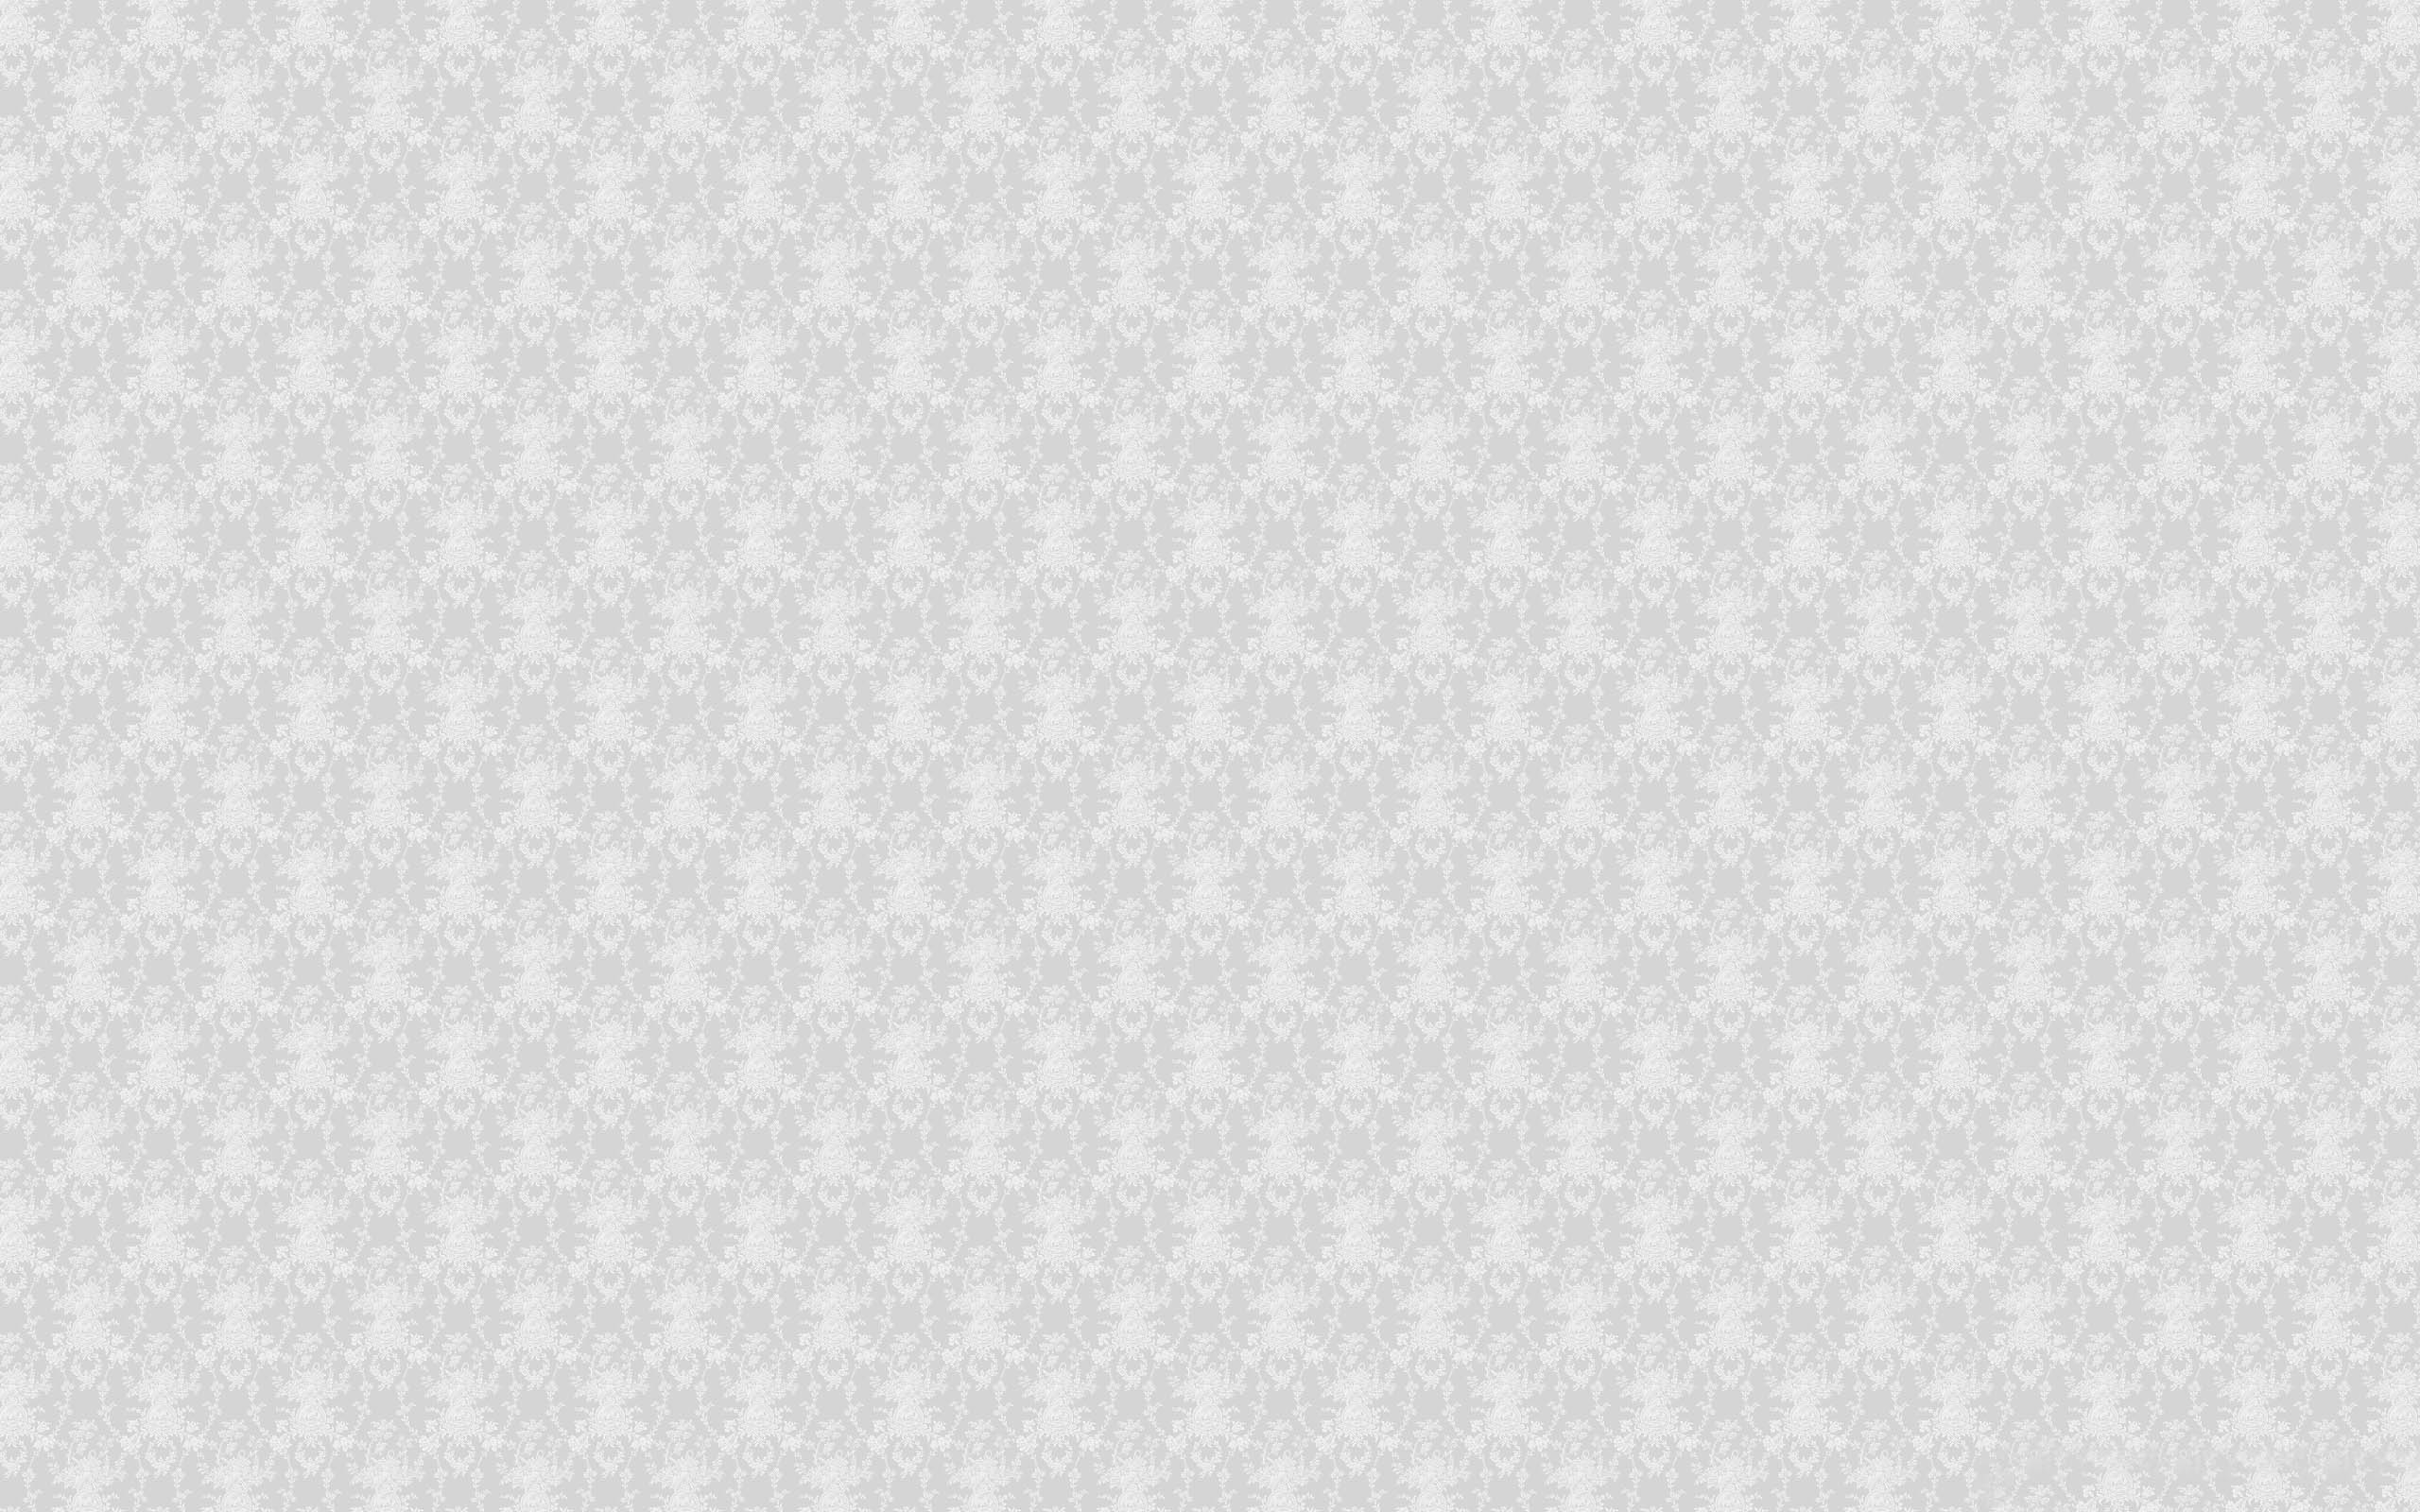 White Wallpaper Background Posted By Ryan Simpson,Quick And Easy Home Improvements